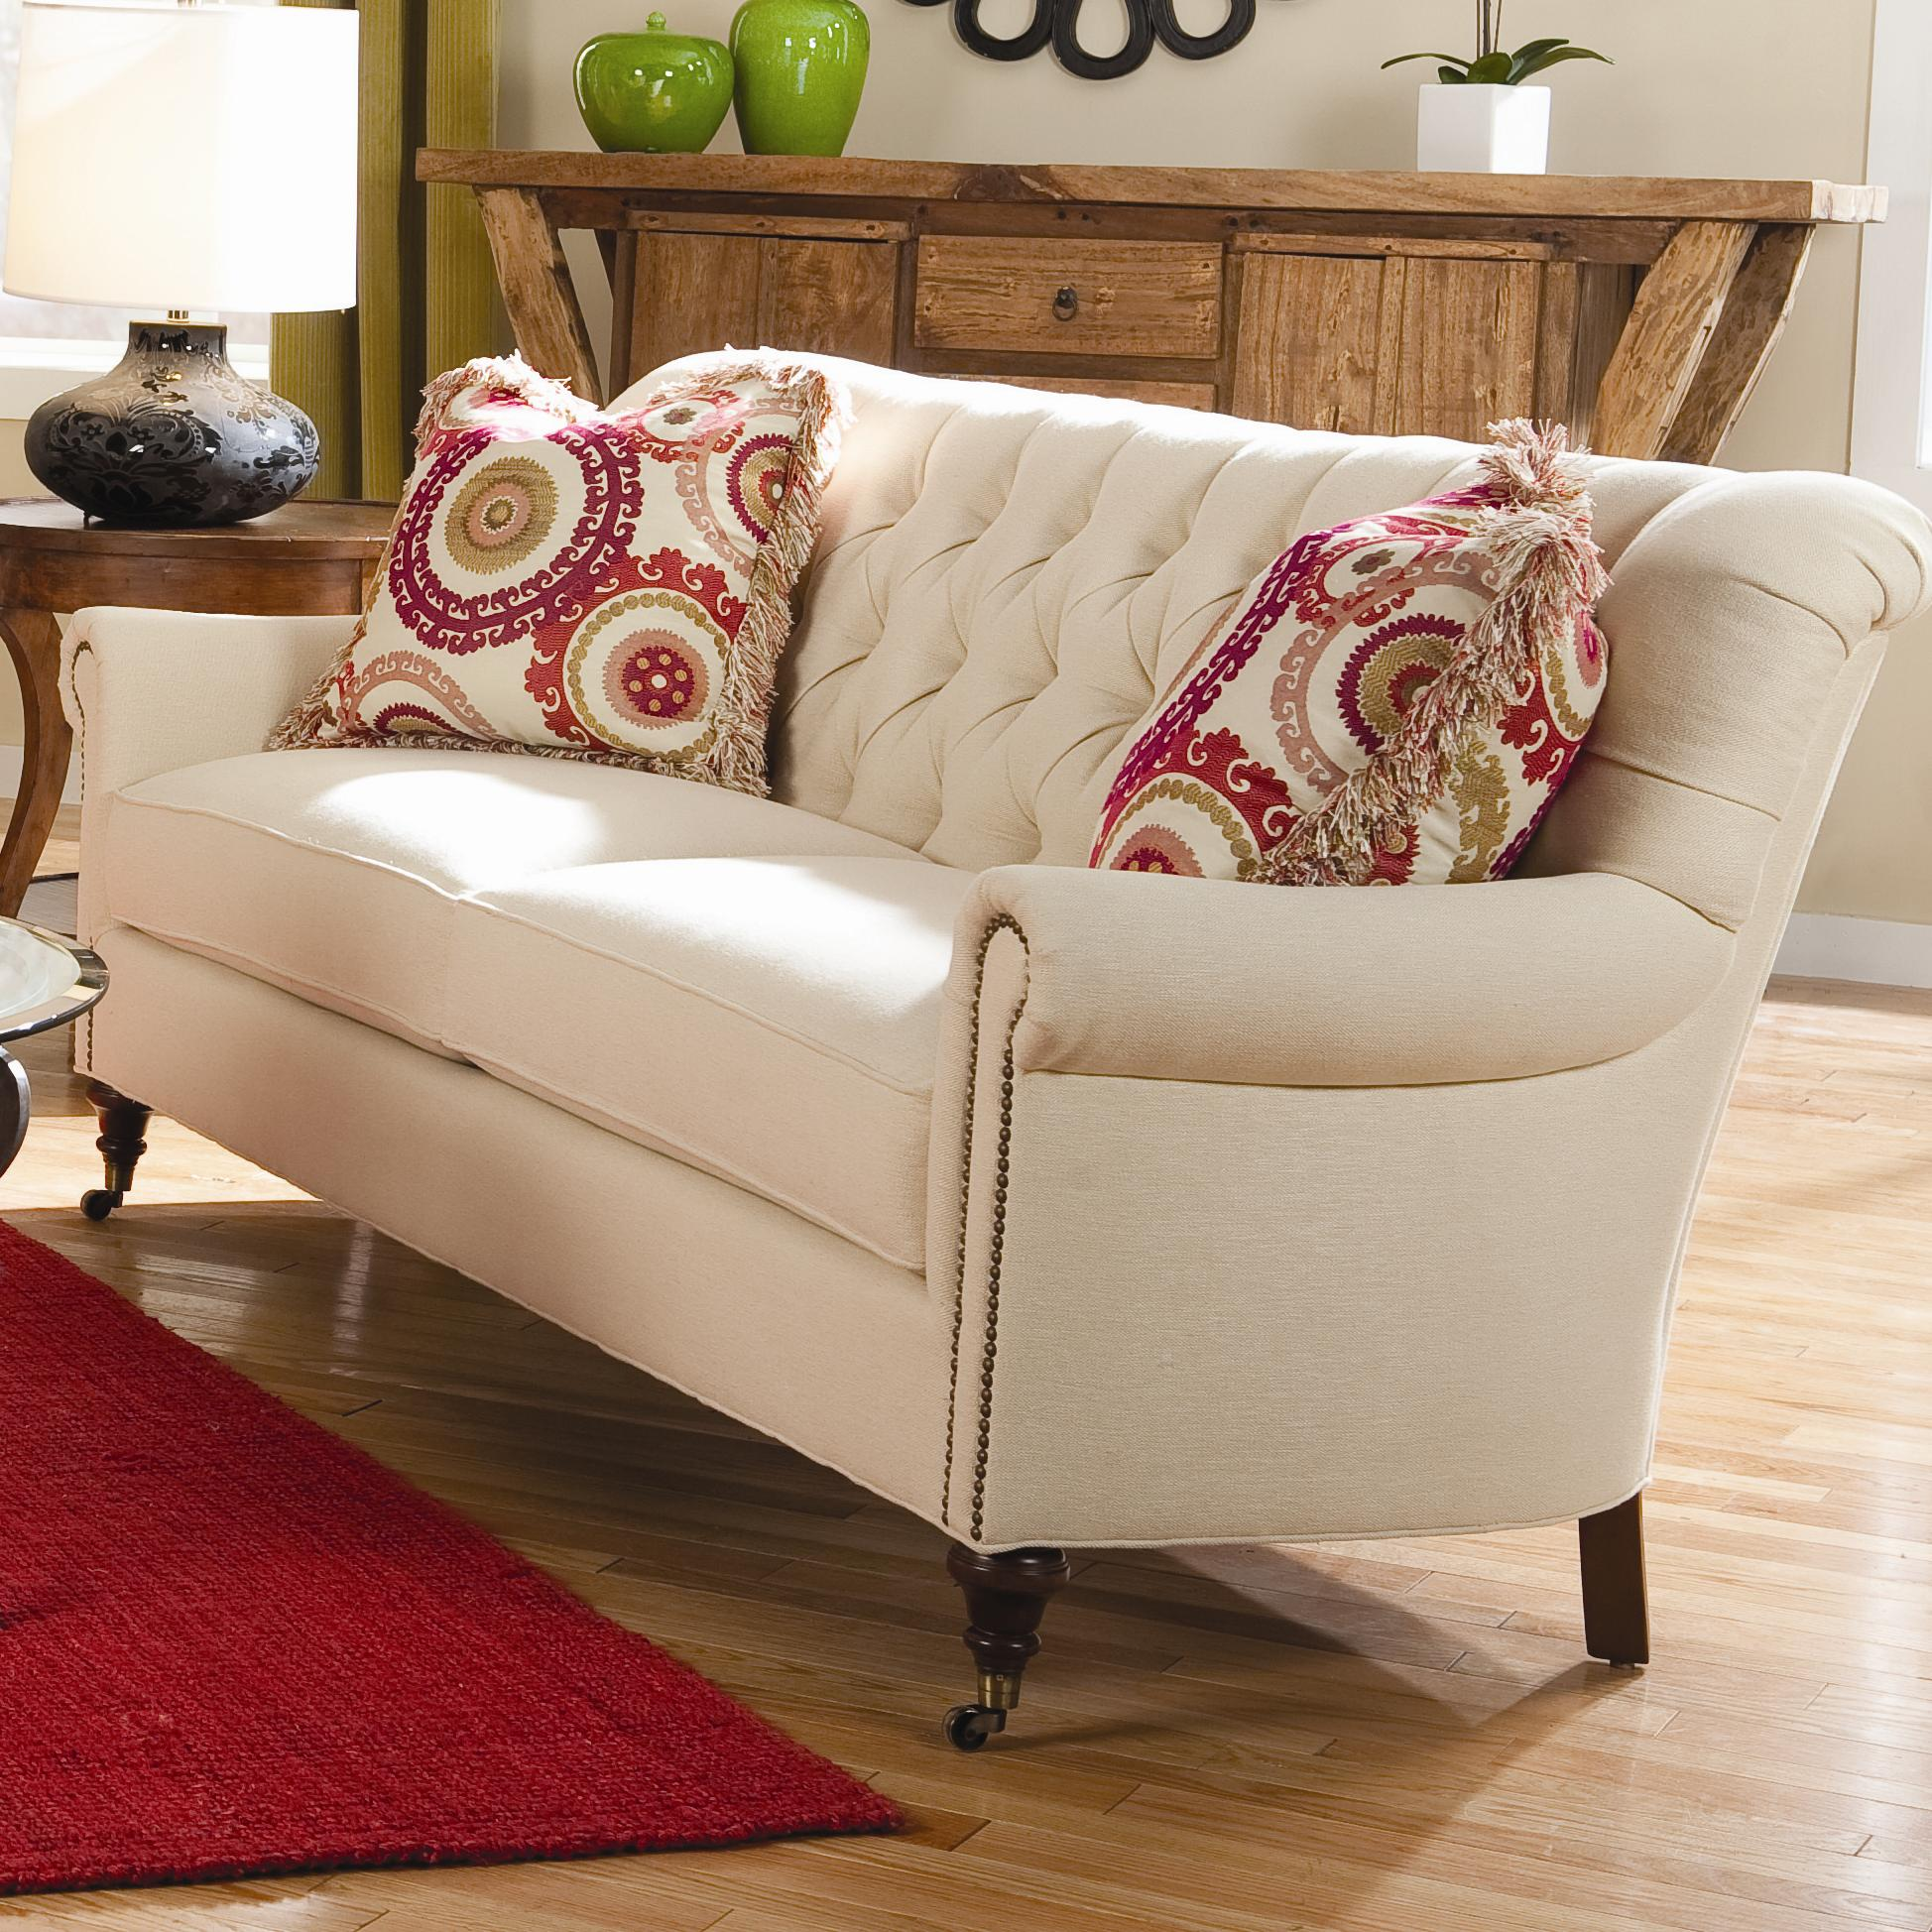 Huntington House 7381 Classic Sofa with Button Tufted Back and